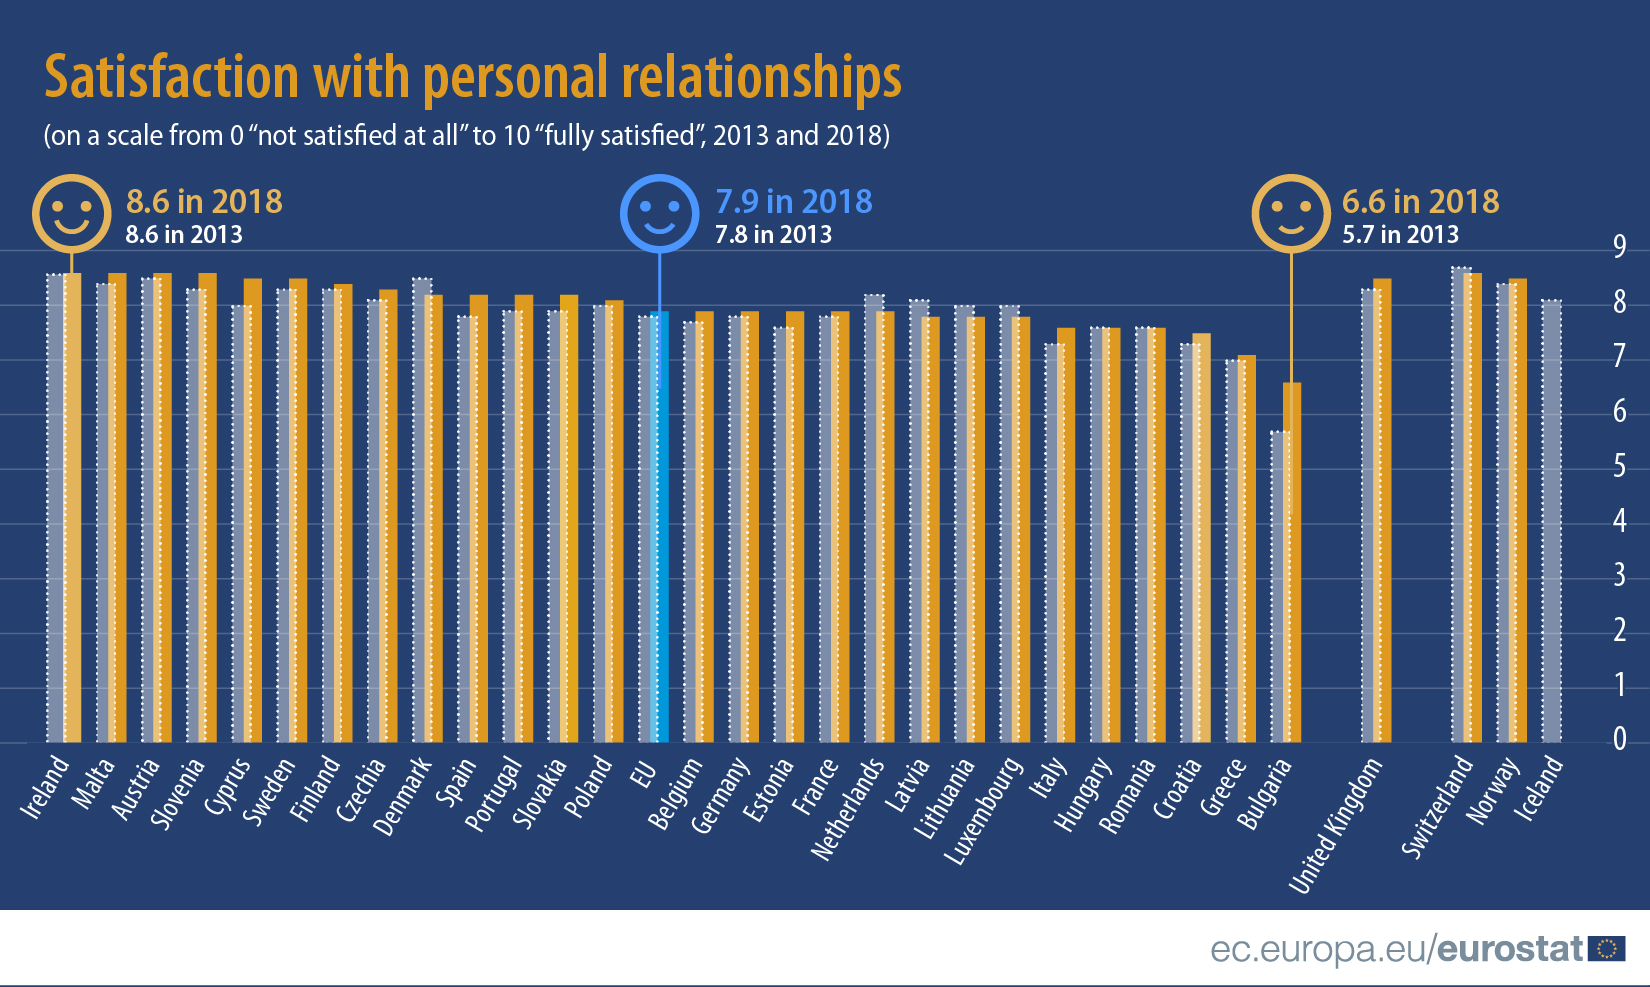 Satisfaction with personal relationships (2013 and 2018)